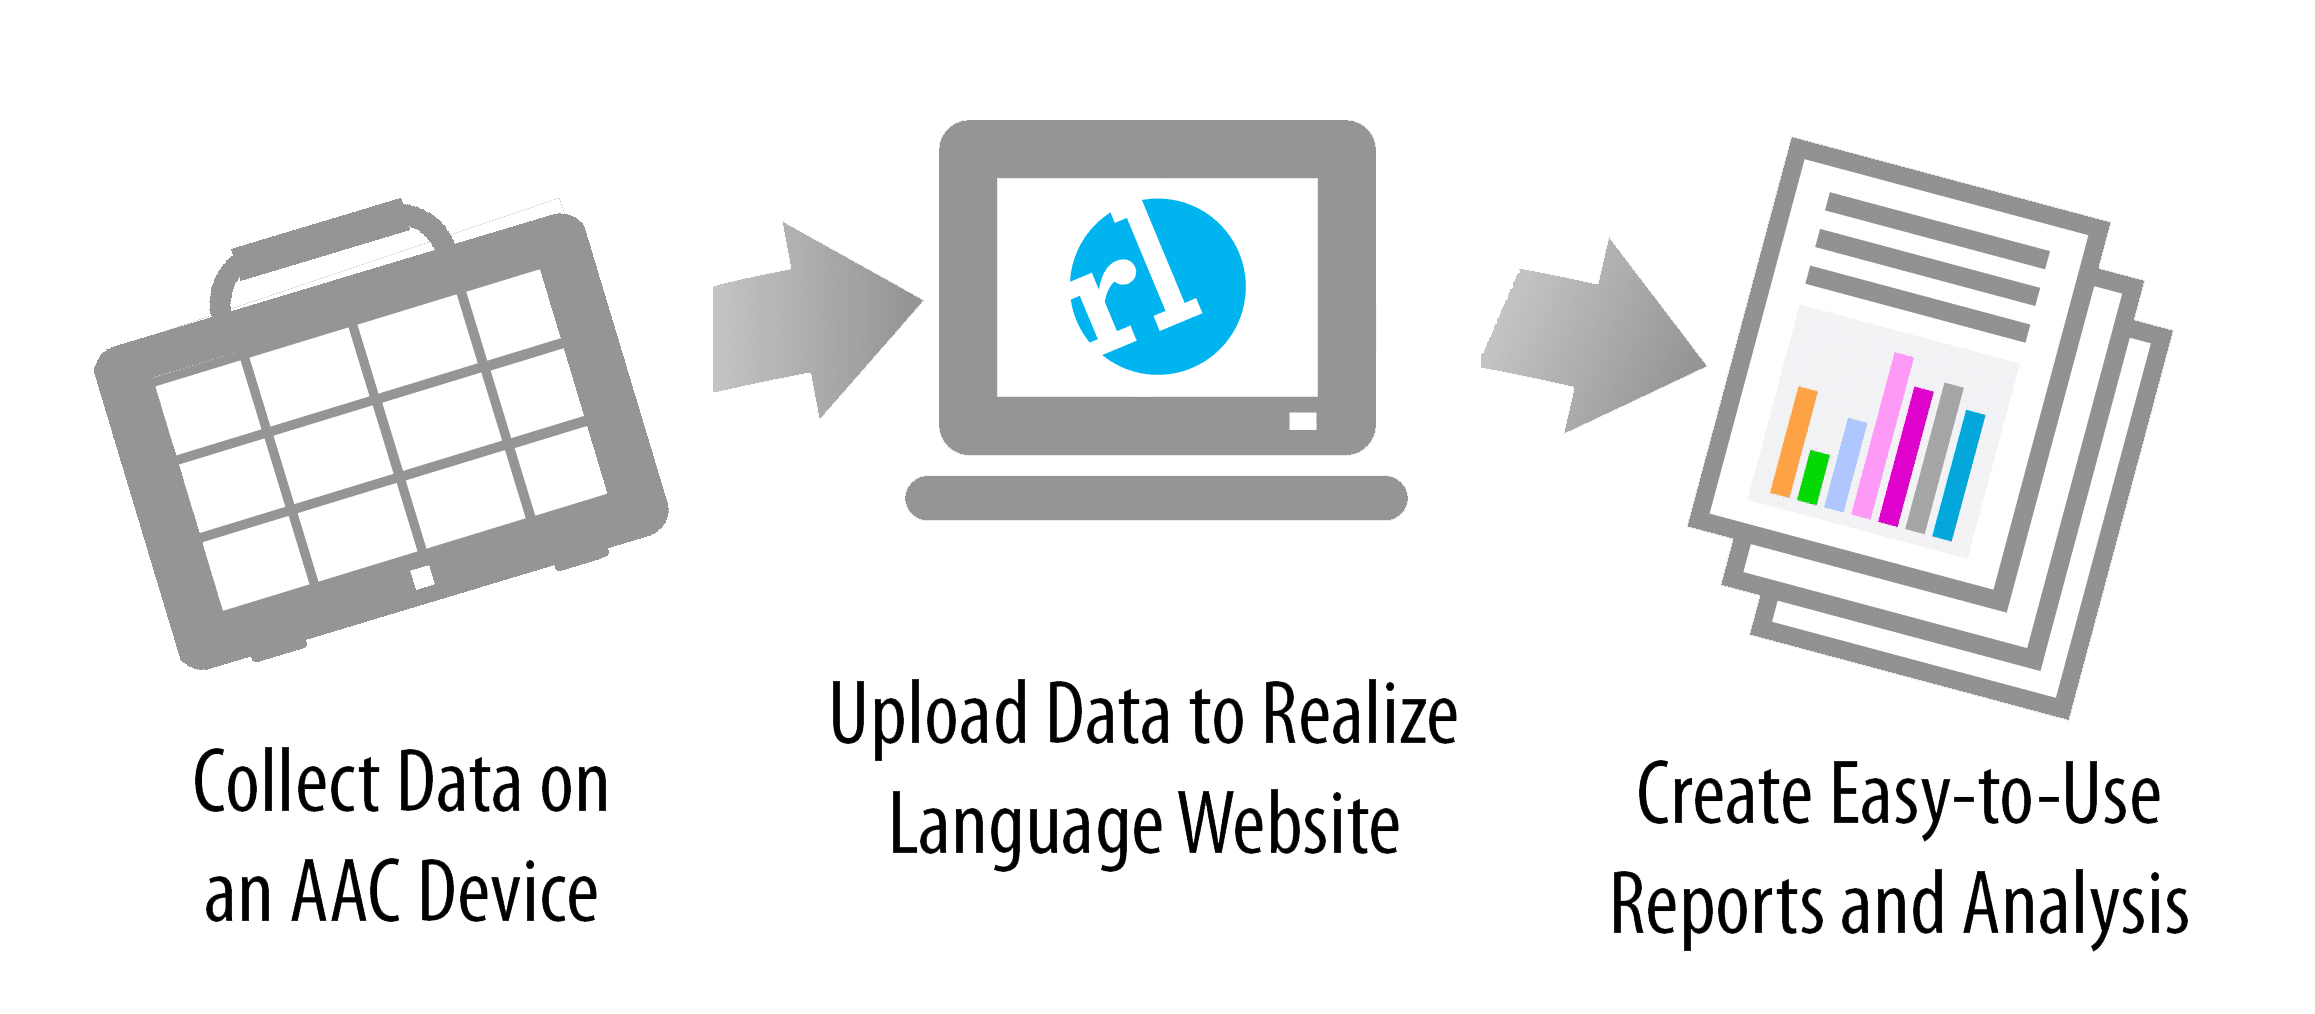 diagram of how Realize collects data